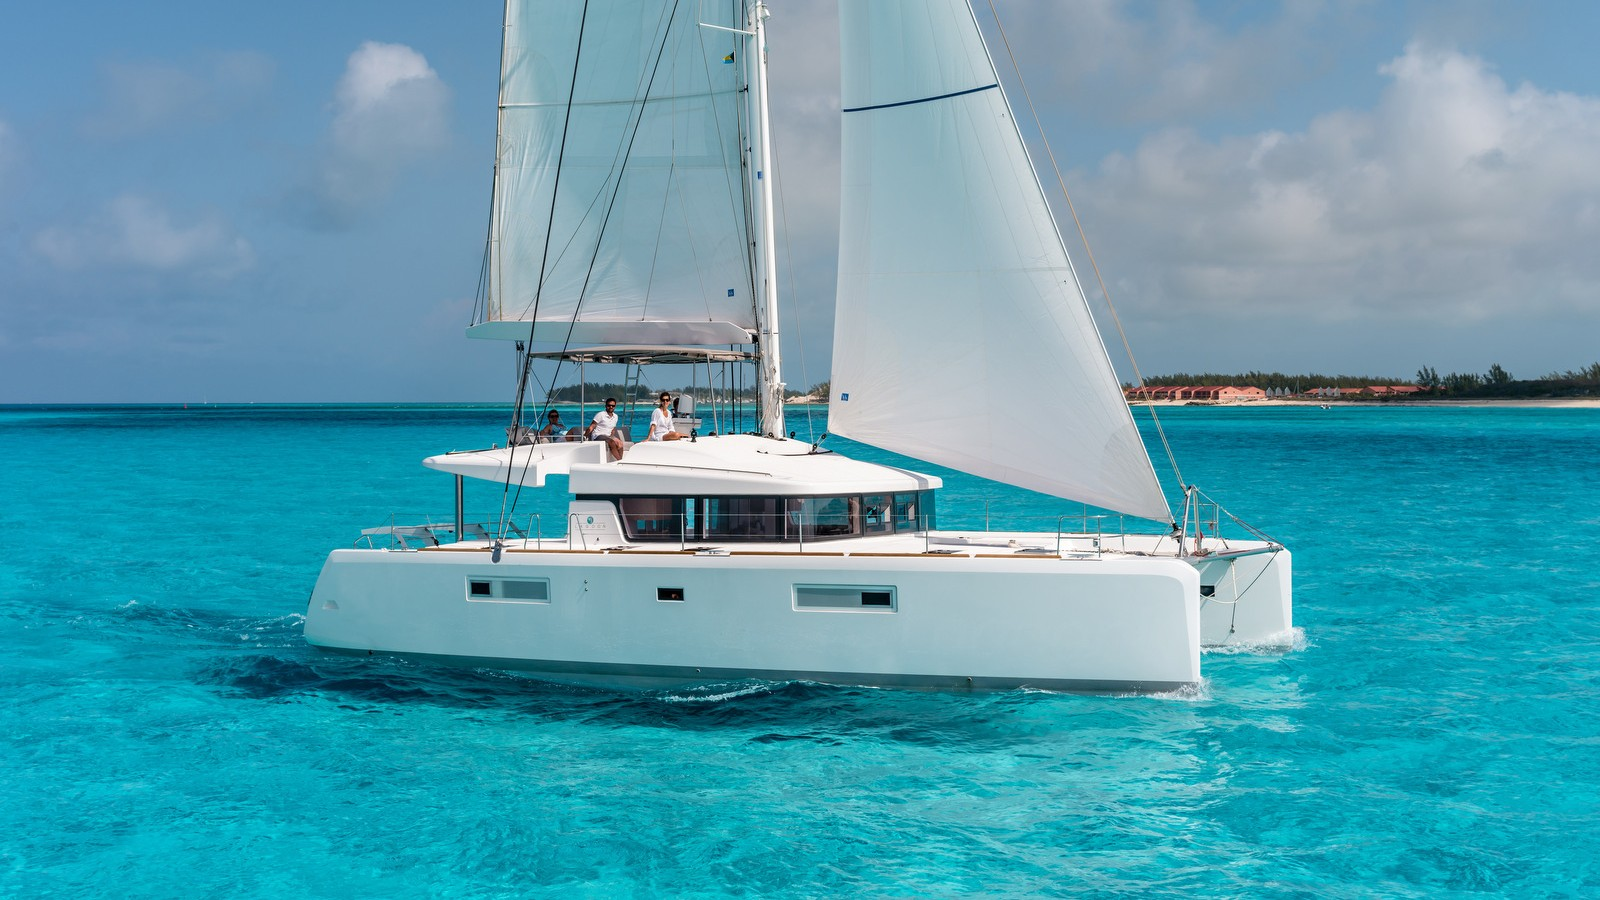 Aurous Catamaran Luxury Sailing Holidays